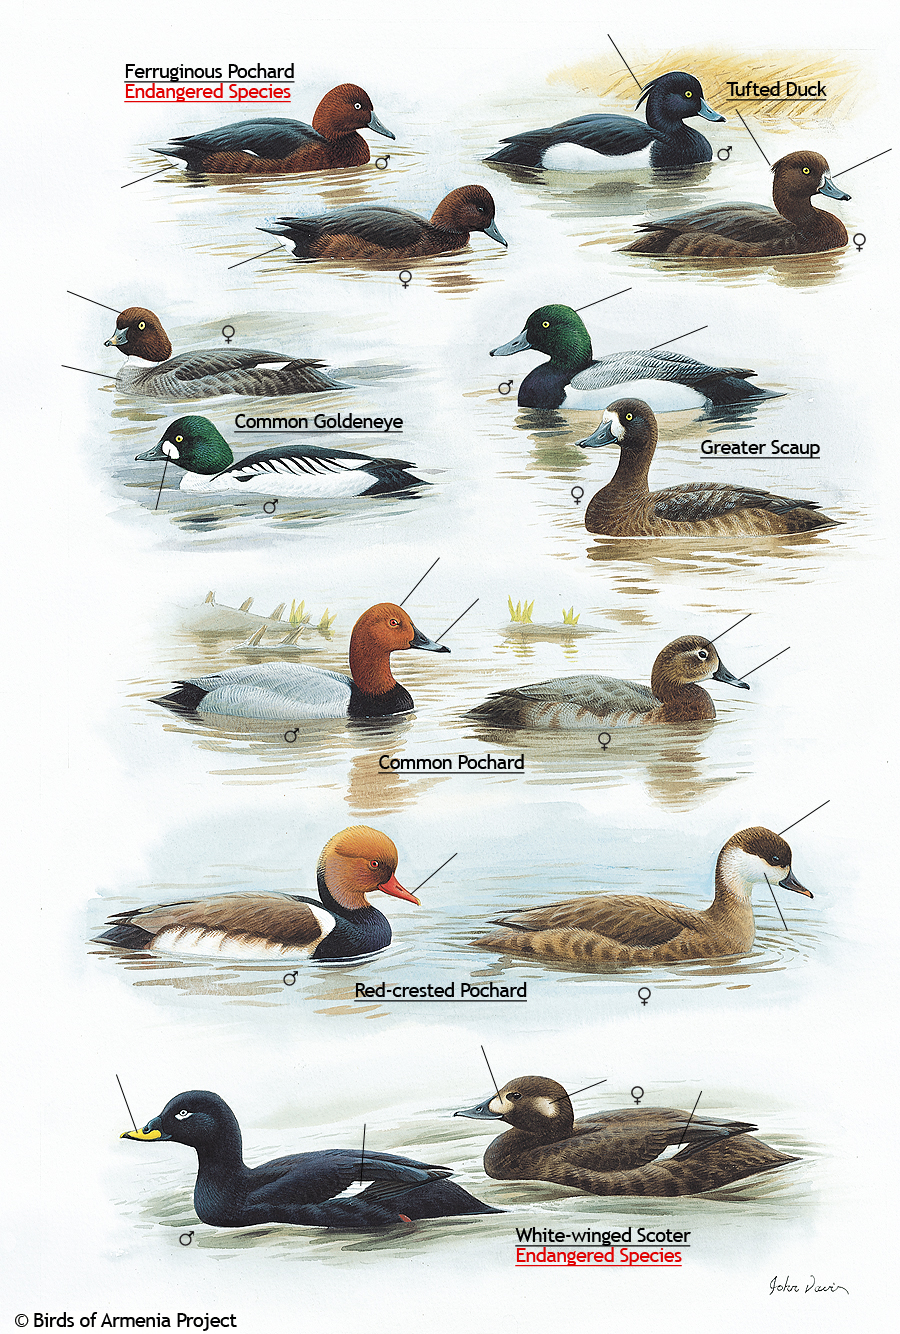 Pochards, Tufted Ducks, Goldeneyes, Scaups, and Scoters